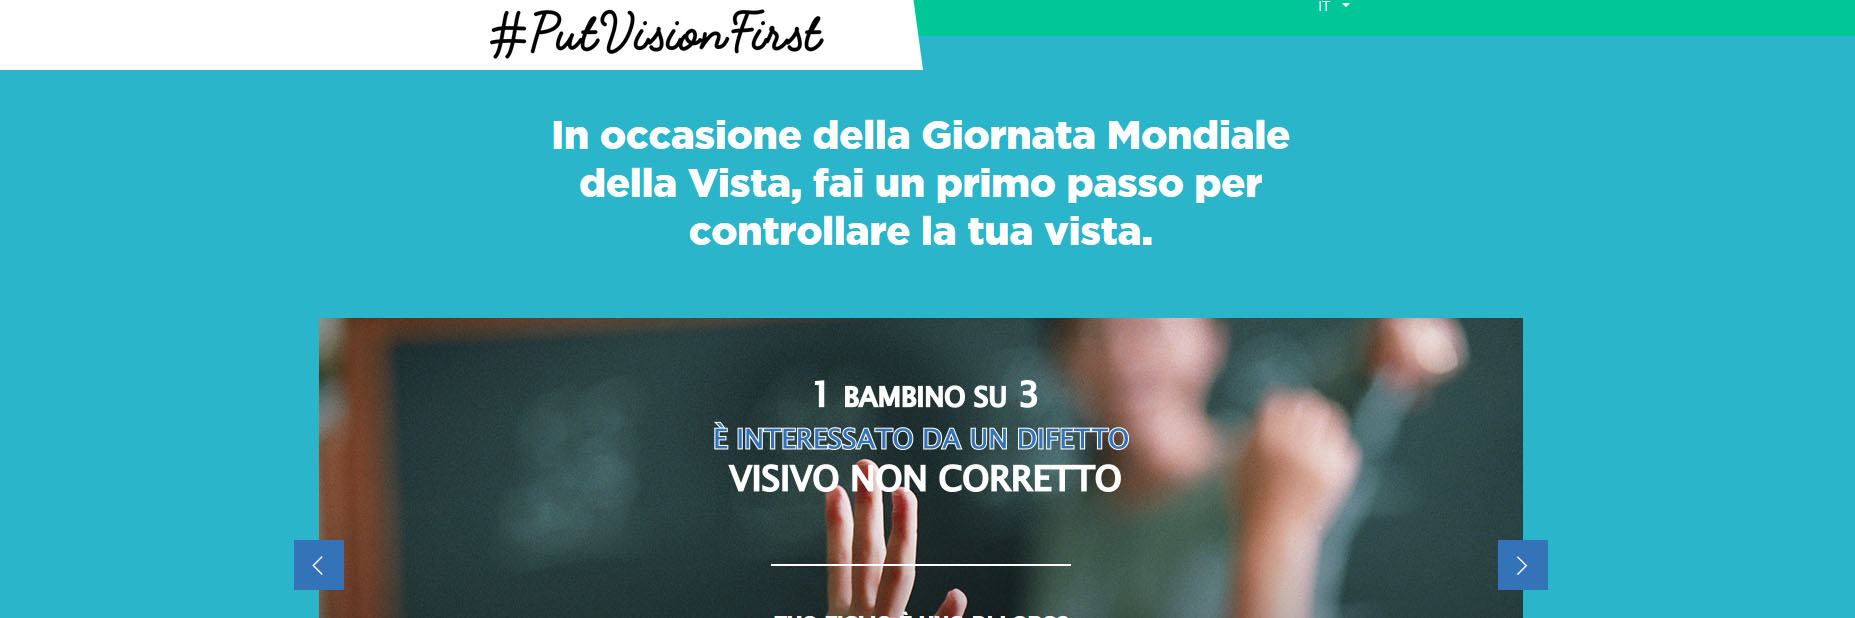 Campagna put vision first